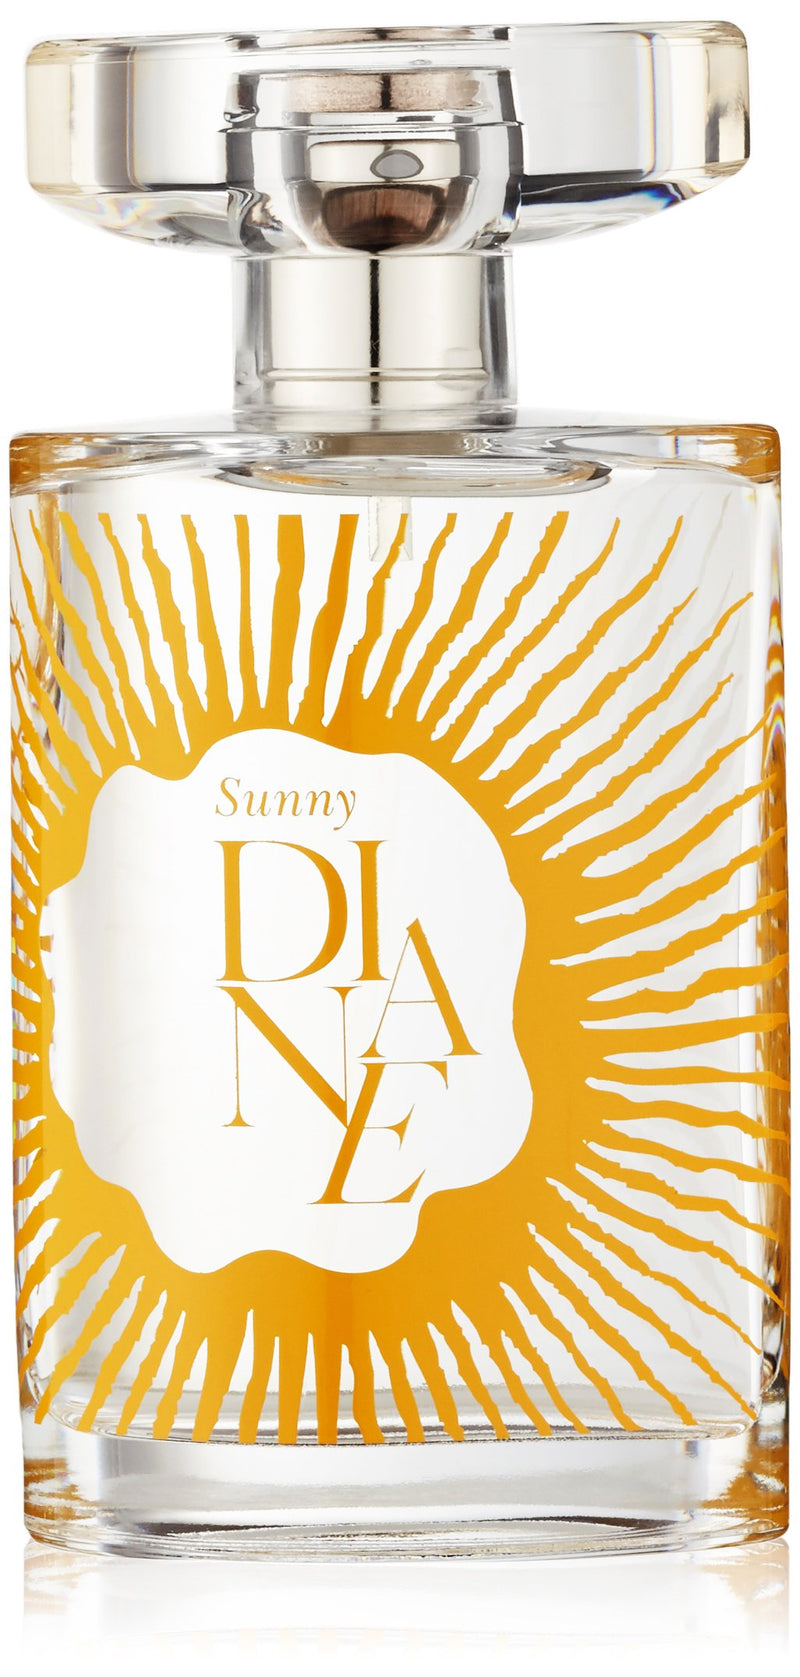 Diane Von Furstenberg Sunny Eau De Toilette Spray for Her 100ml